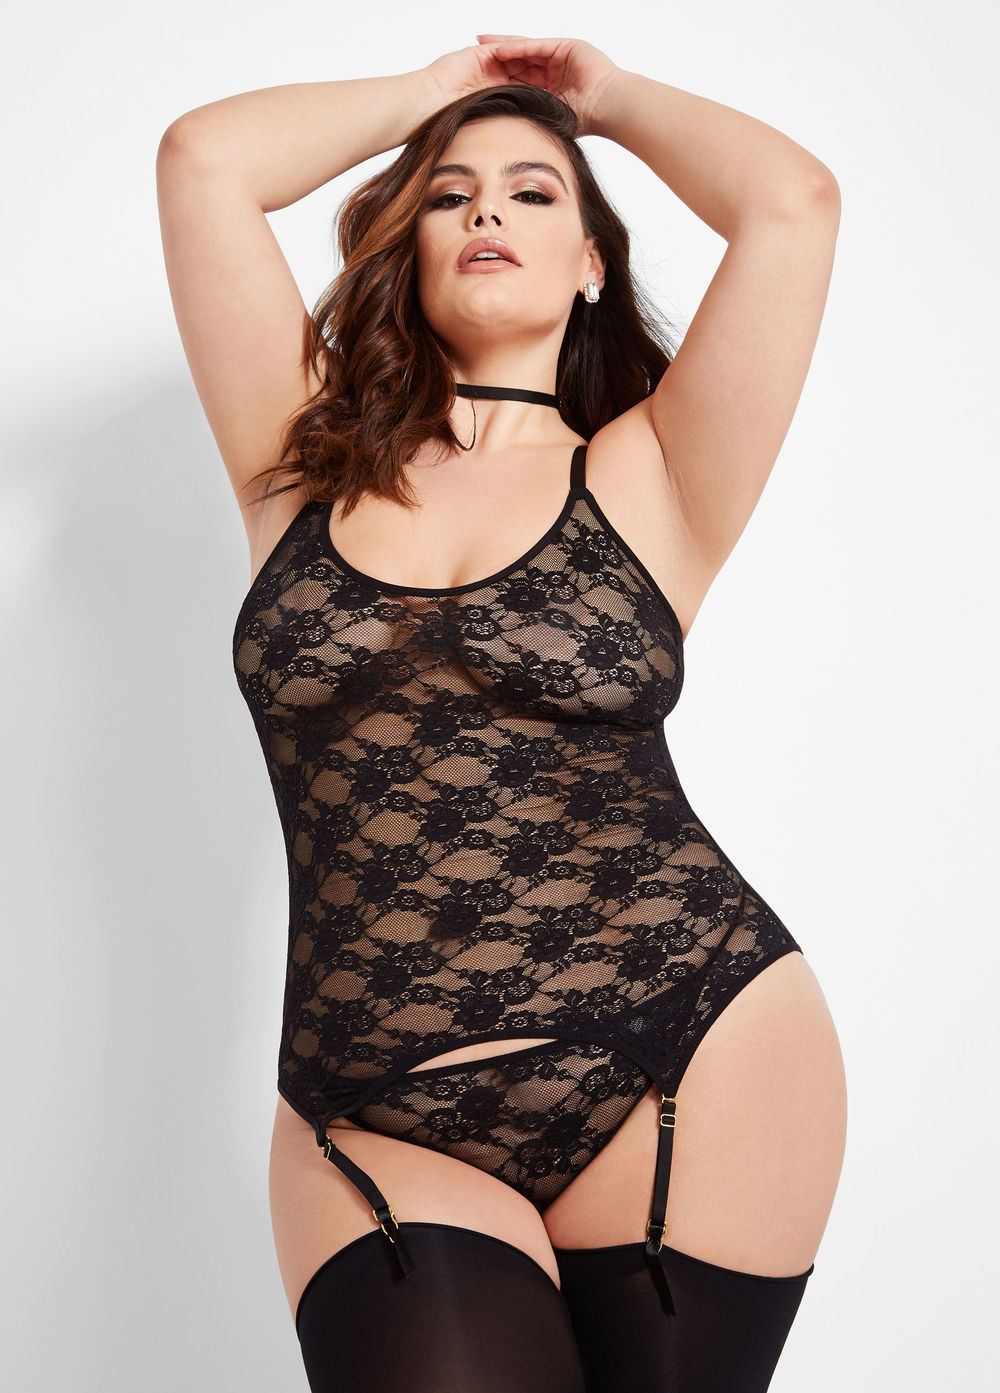 Garter Chemise Lingerie Set at AshleyStewart.com